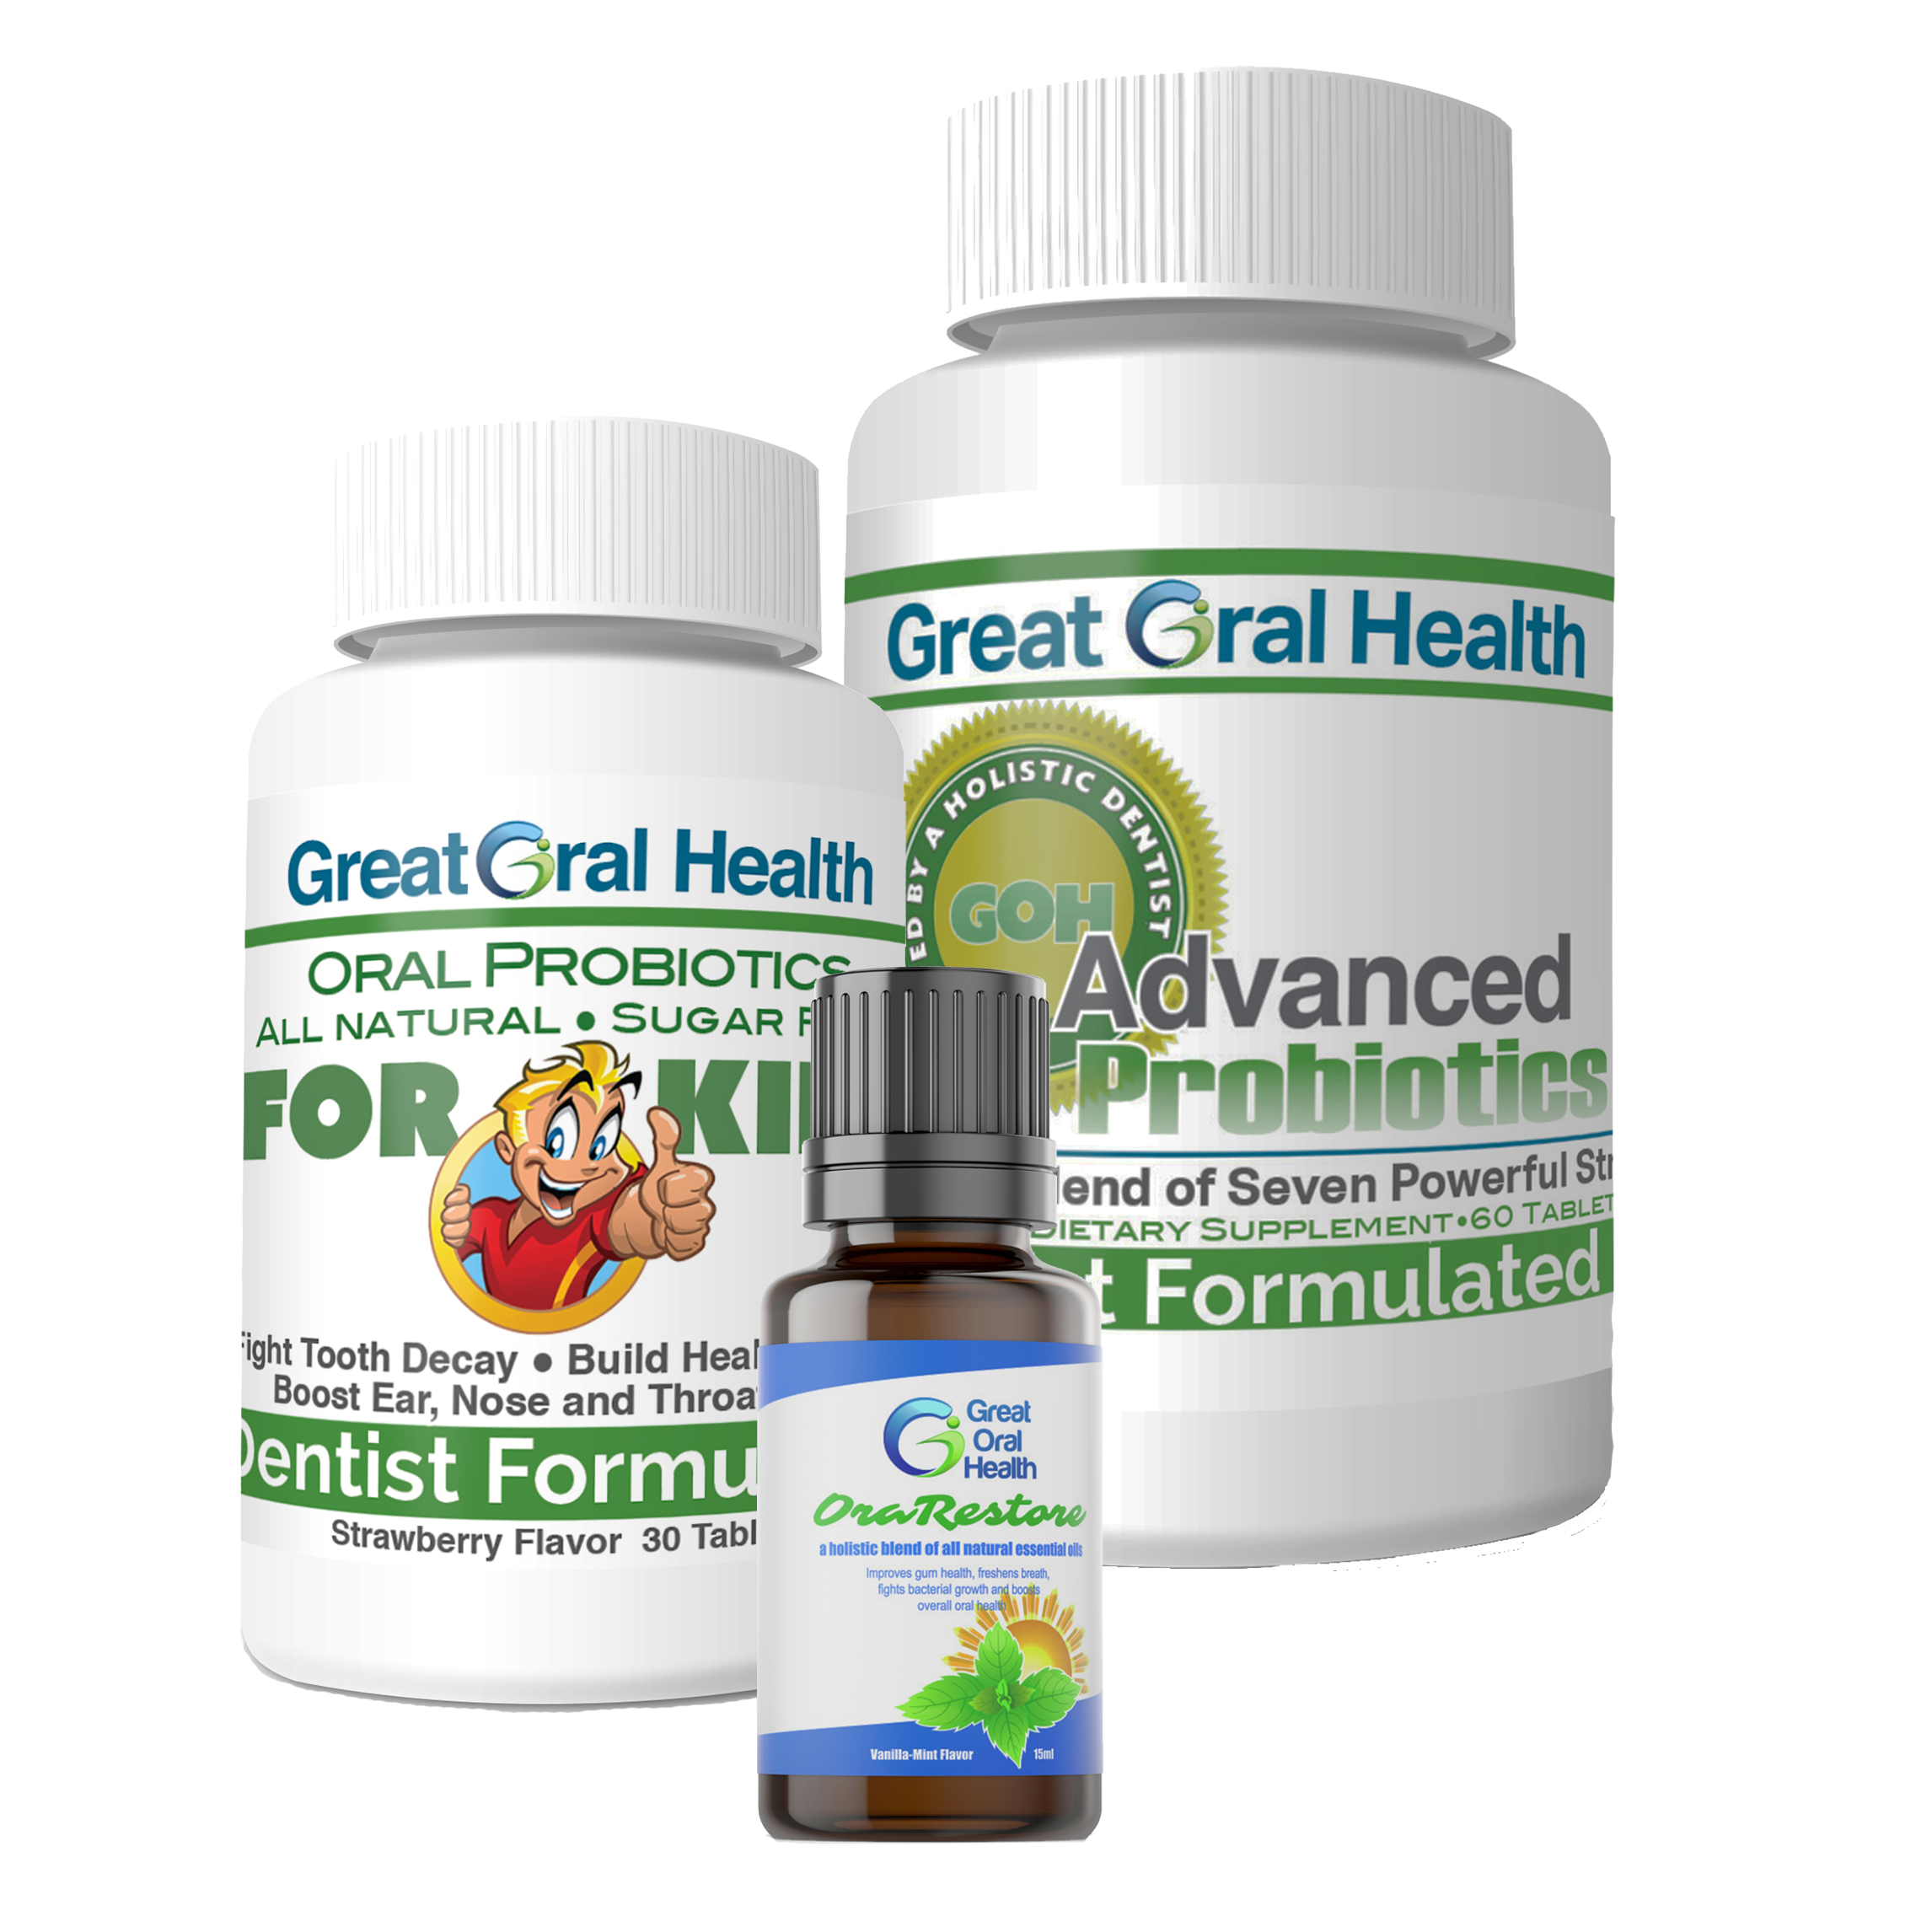 Great Oral Health Care Products